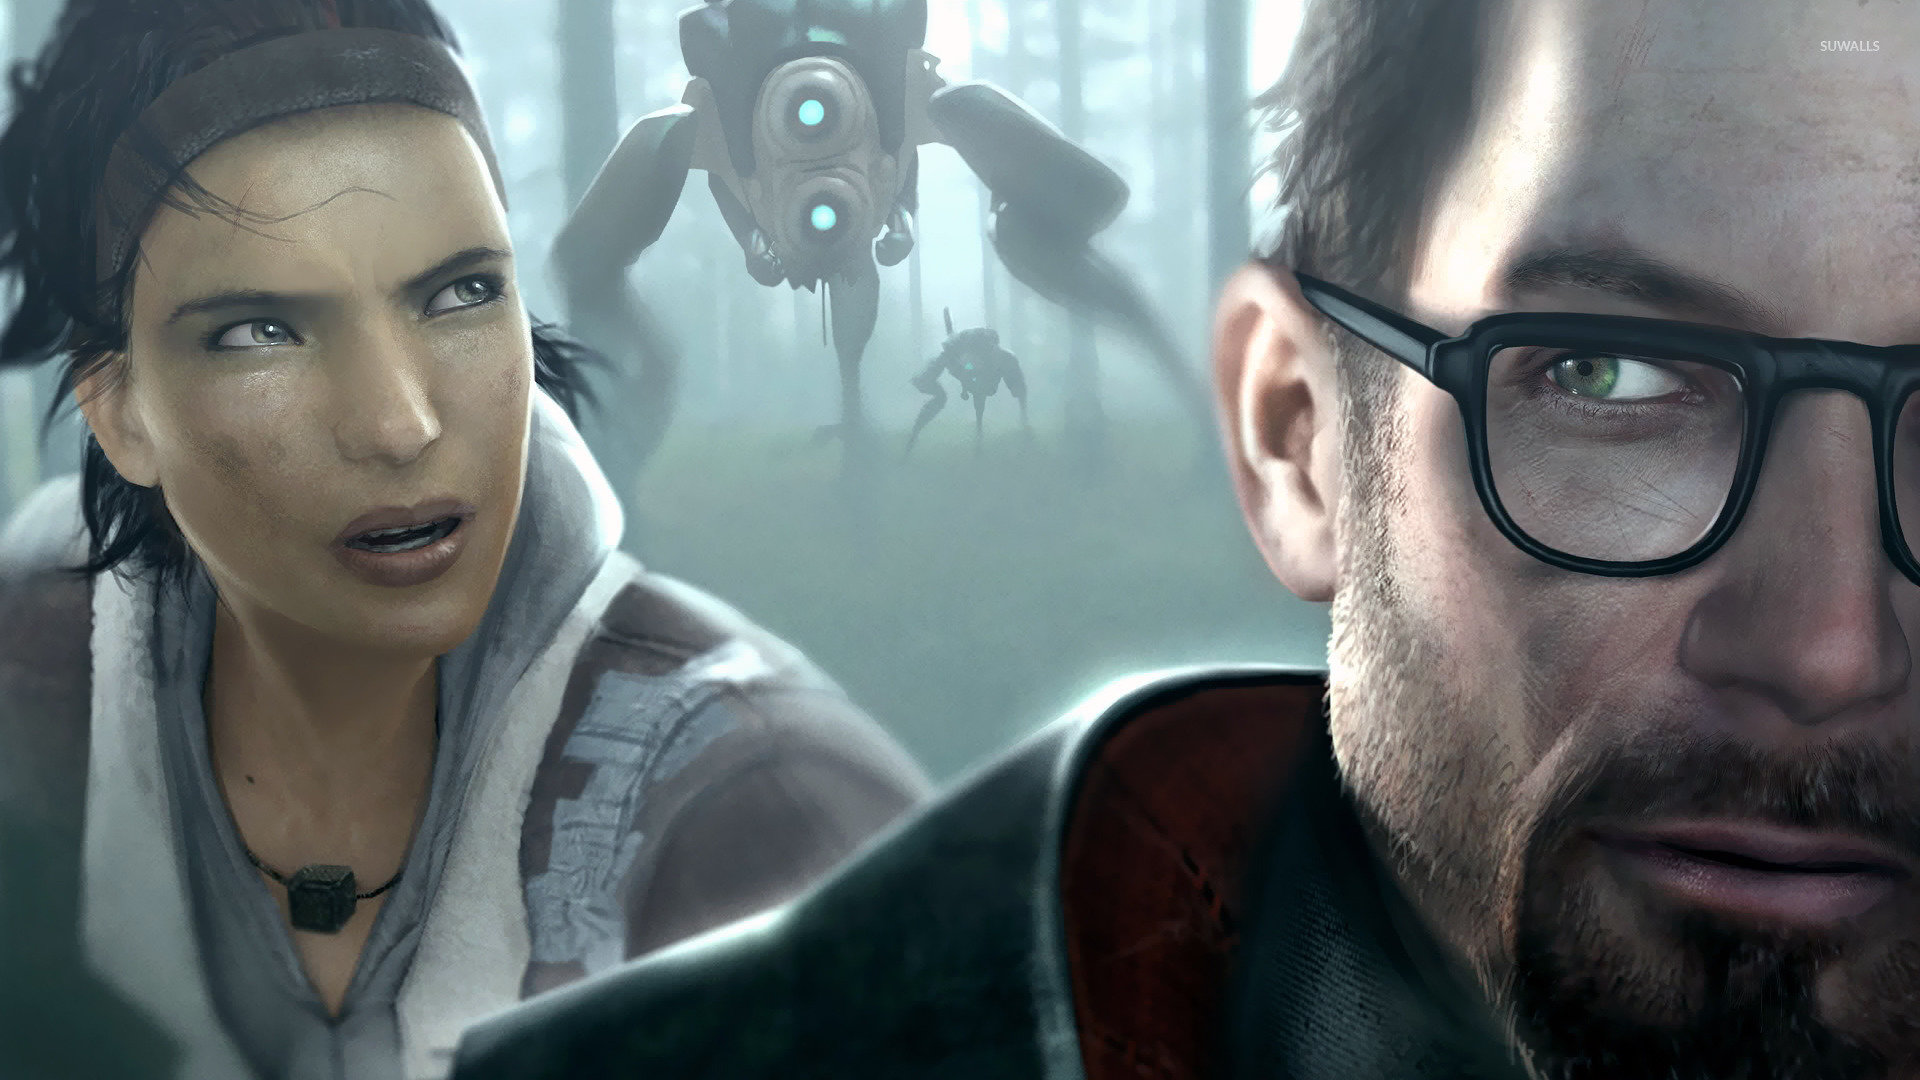 Gabe Newell Hints at Half-Life 3 During Valve Index Party, Sort of